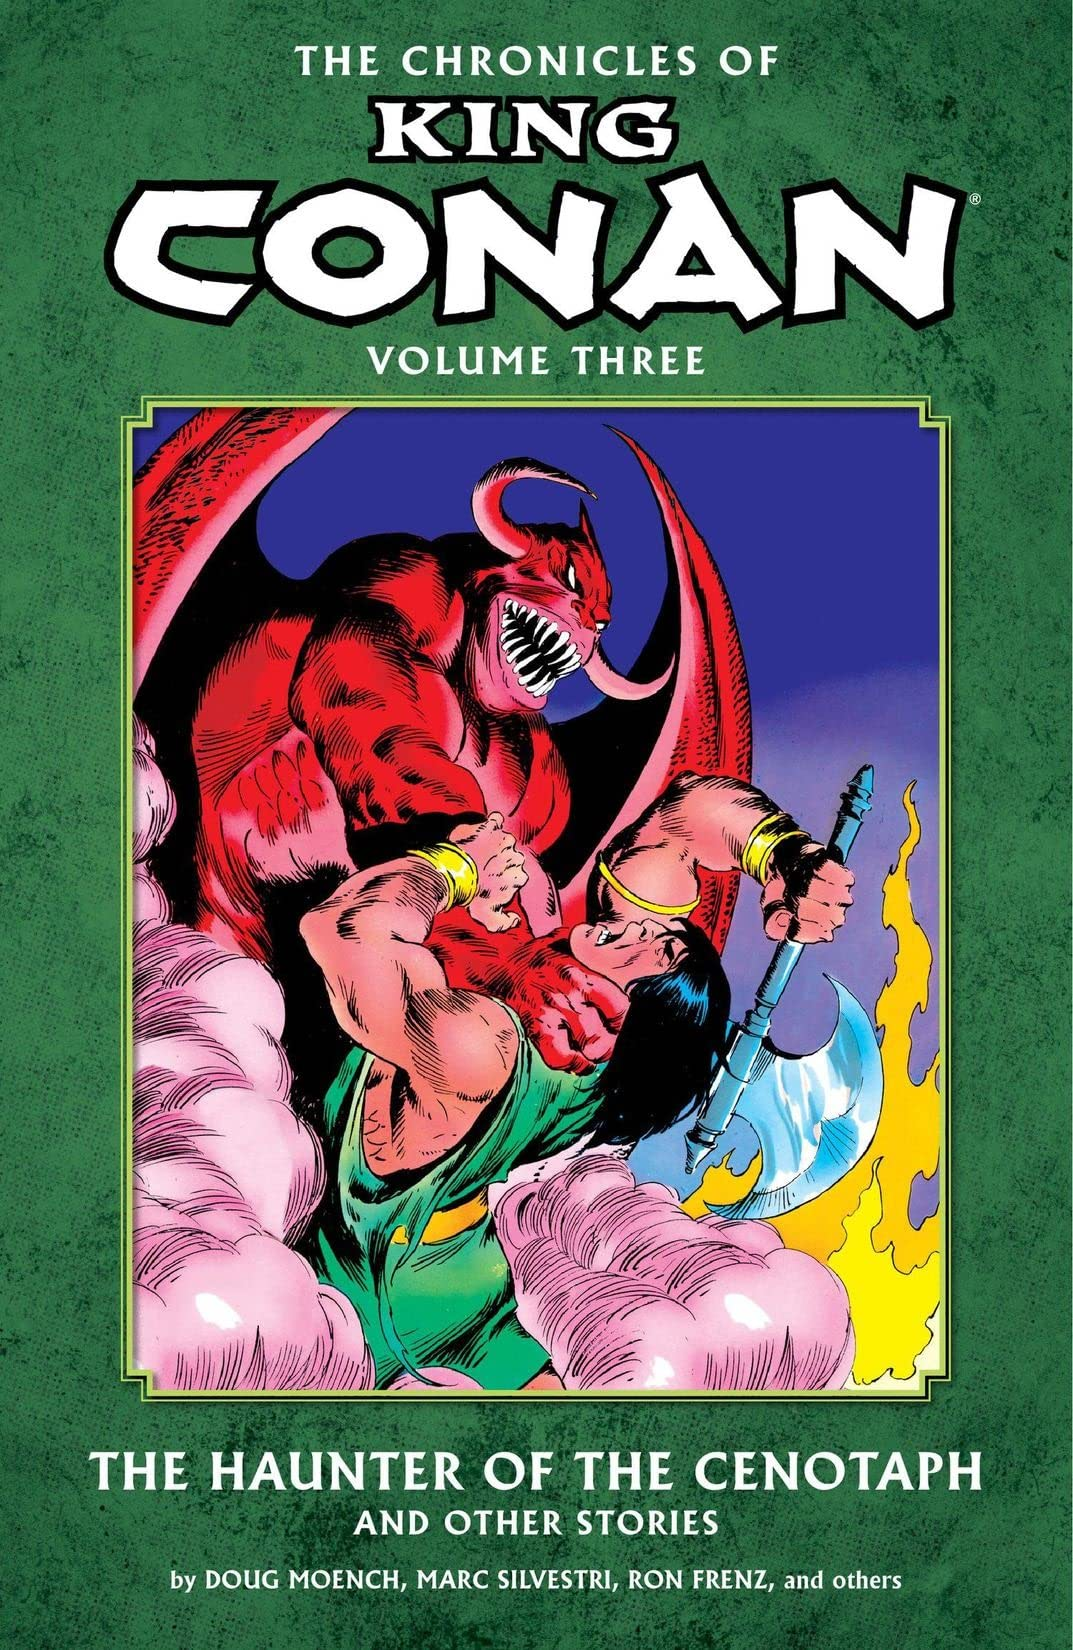 The Chronicles of King Conan Vol. 3: The Haunter of the Cenotaph and Other Stories